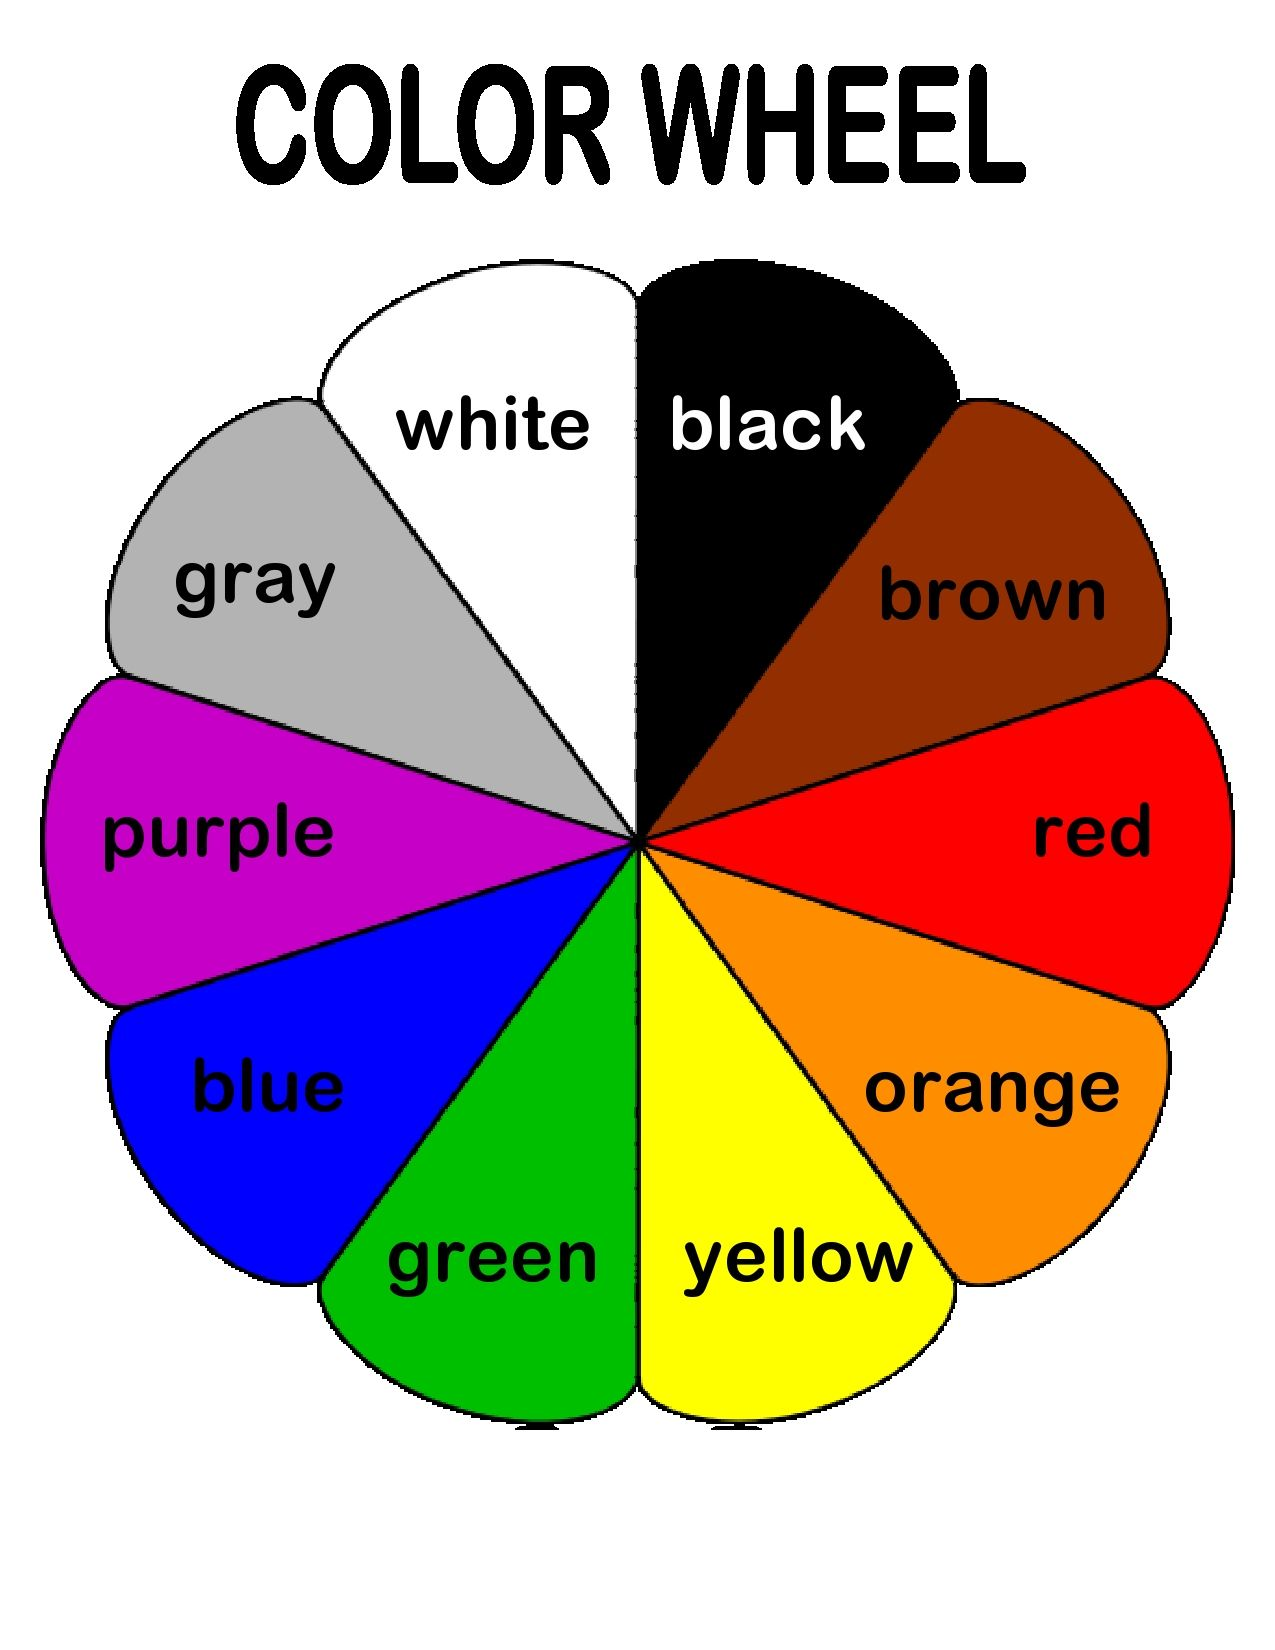 The Color Wheel Helps Preschoolers Associate Basic Colors With Their Names